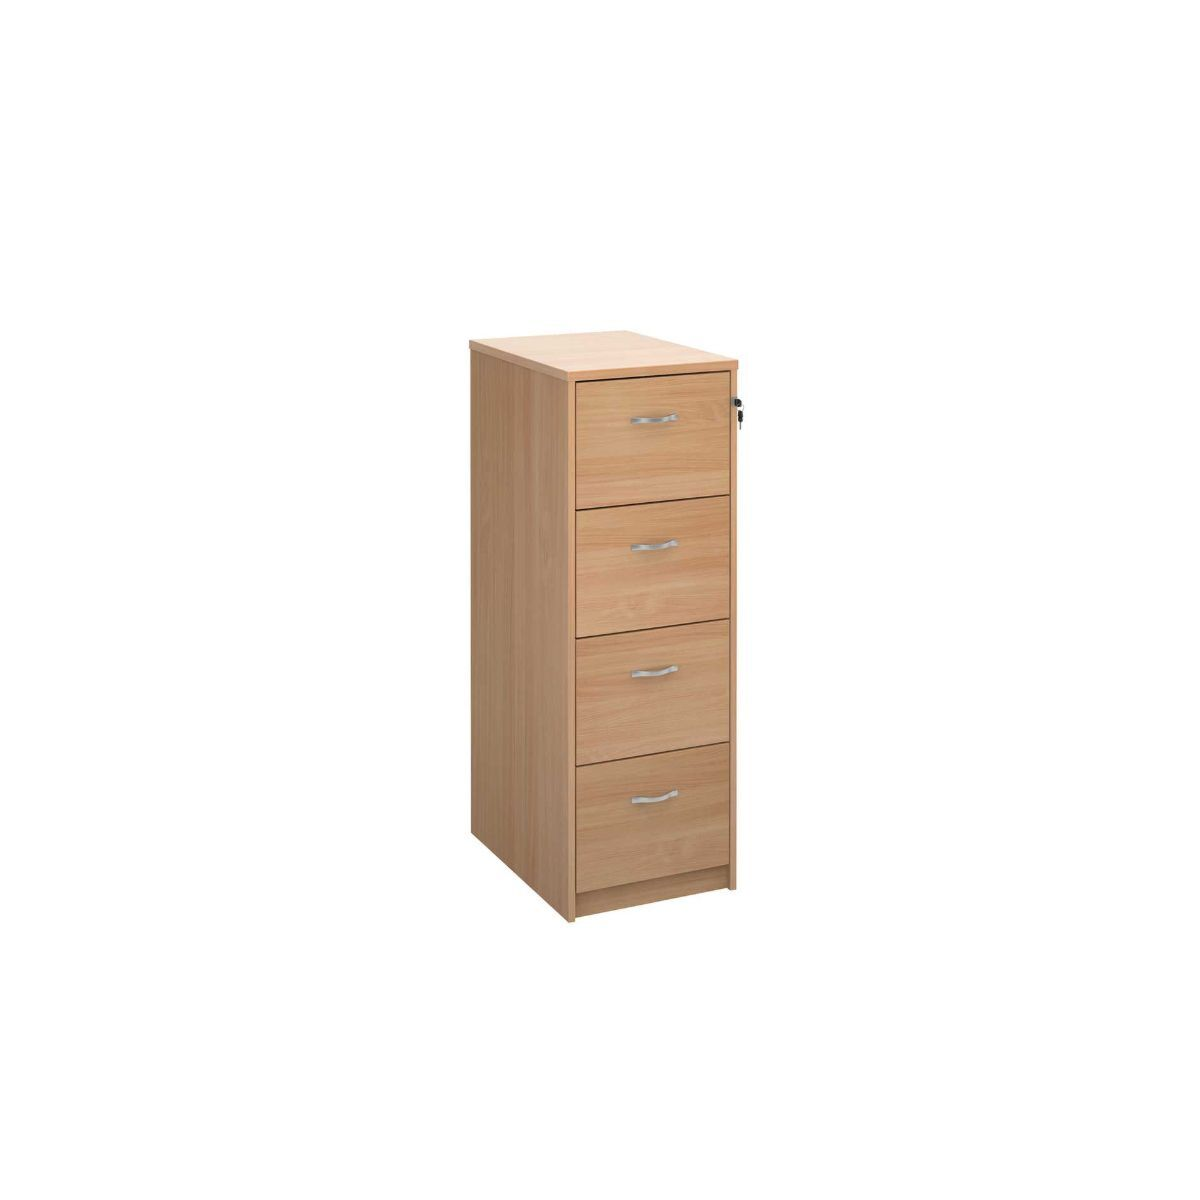 Deluxe Executive Four Drawer Filing Cabinet Beech